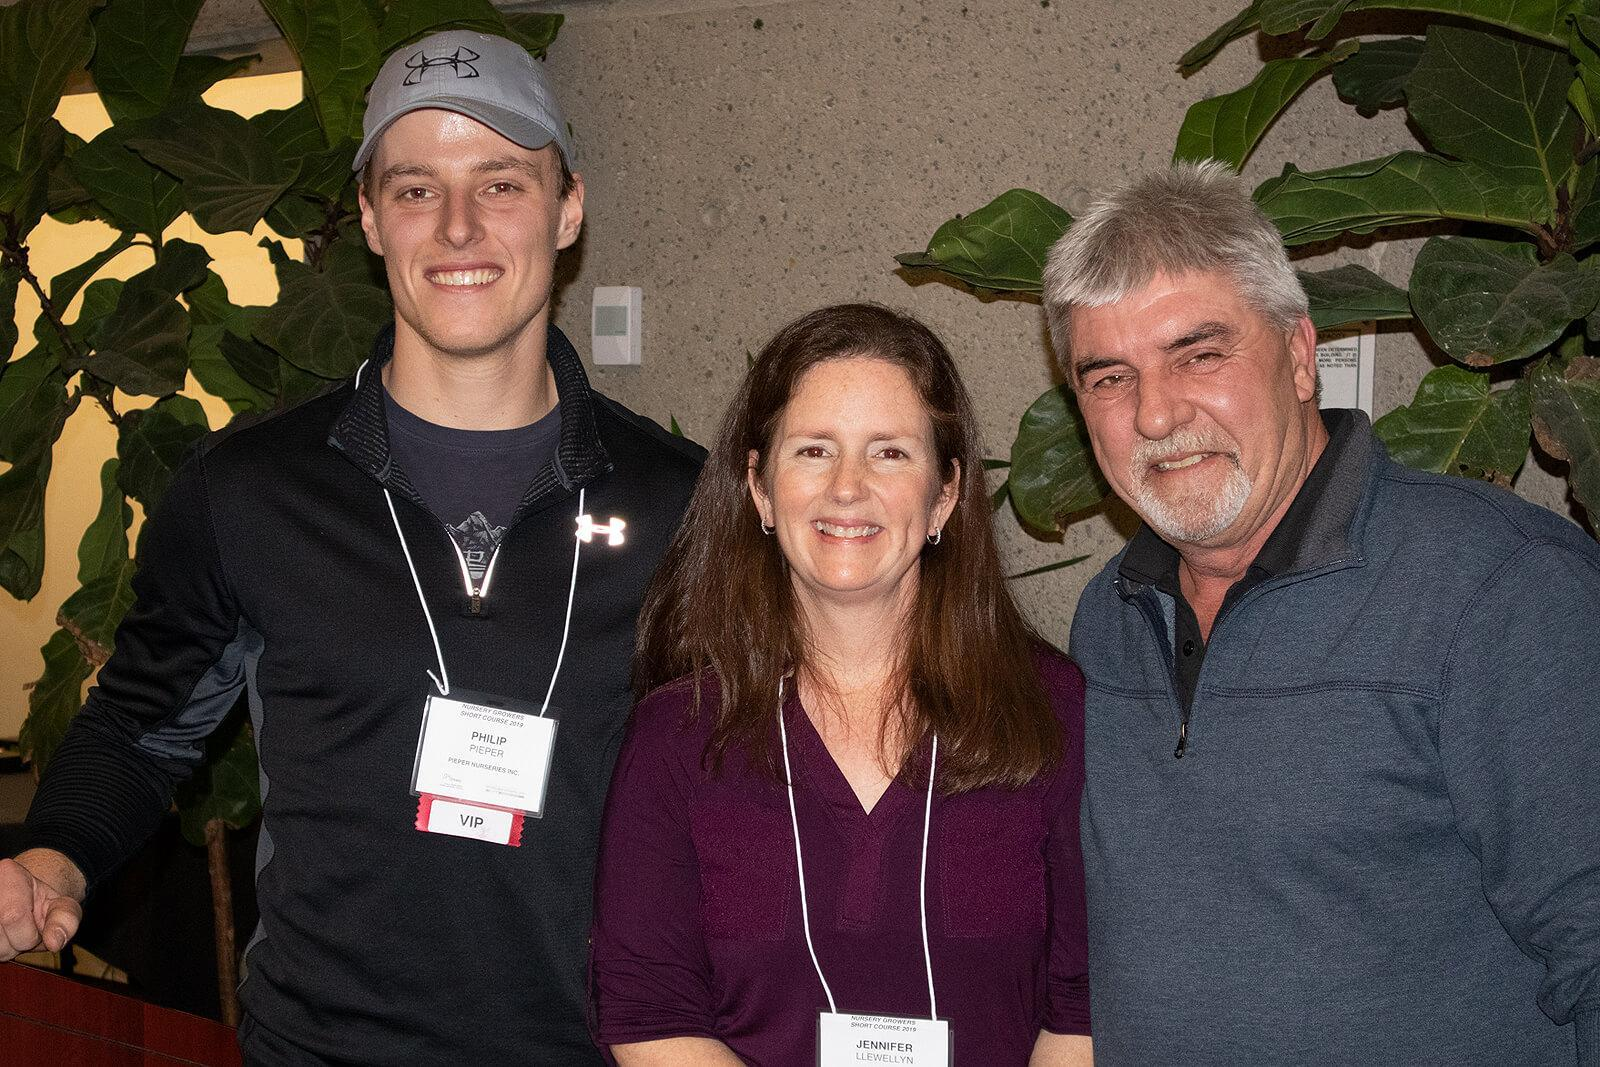 Philip Pieper, Jen Llewellyn and Case Vanderkruk at the 2019 LO Growers Short Course.